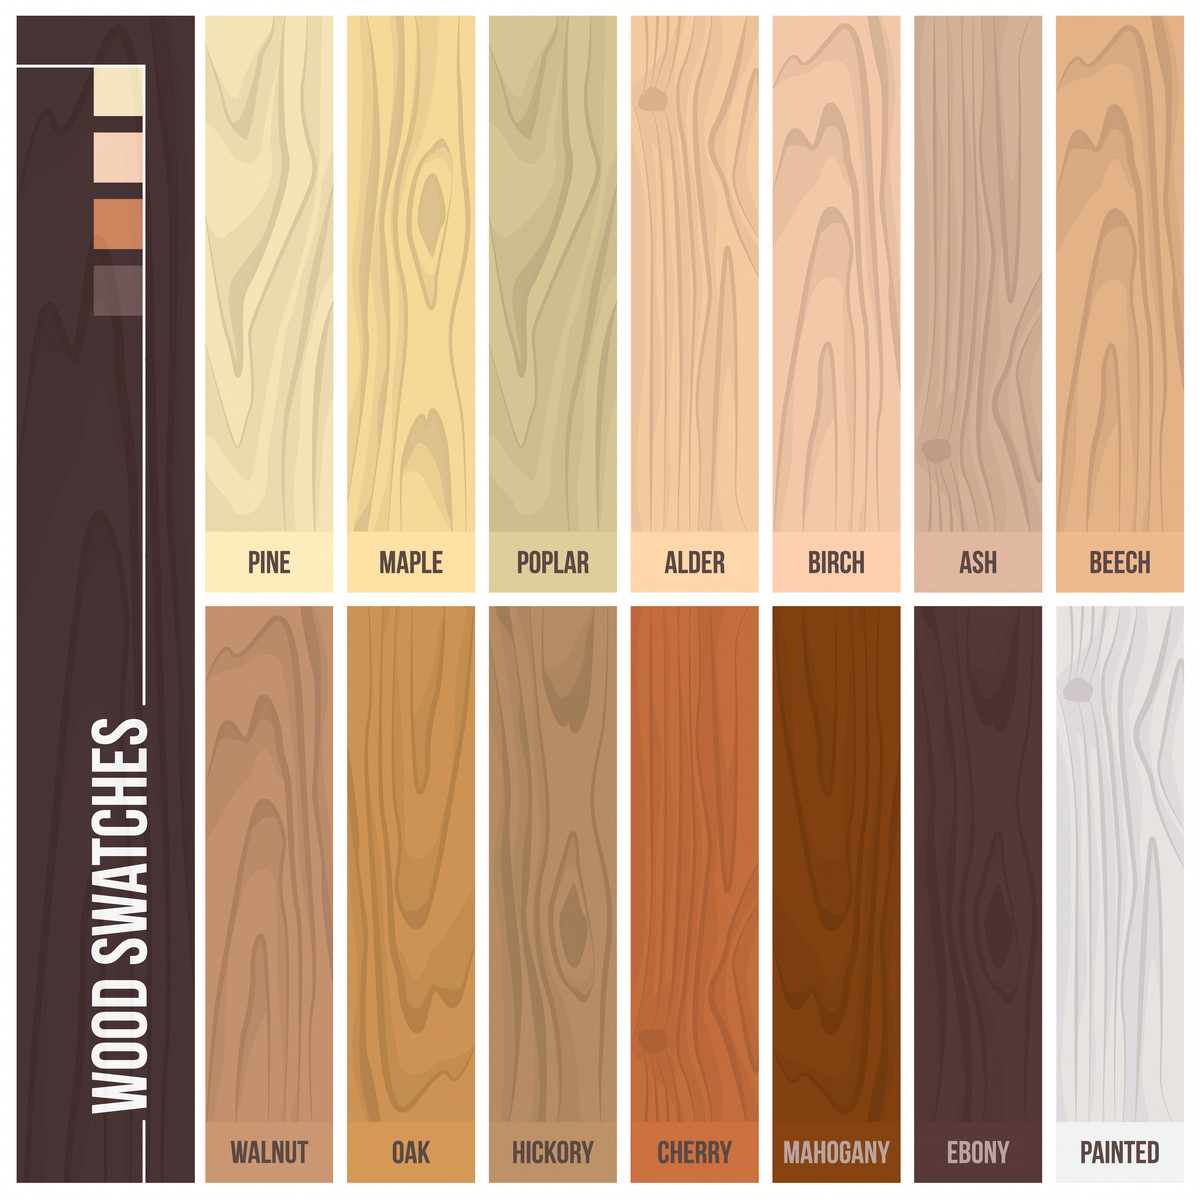 acacia walnut engineered hardwood flooring of 12 types of hardwood flooring species styles edging dimensions with regard to types of hardwood flooring illustrated guide